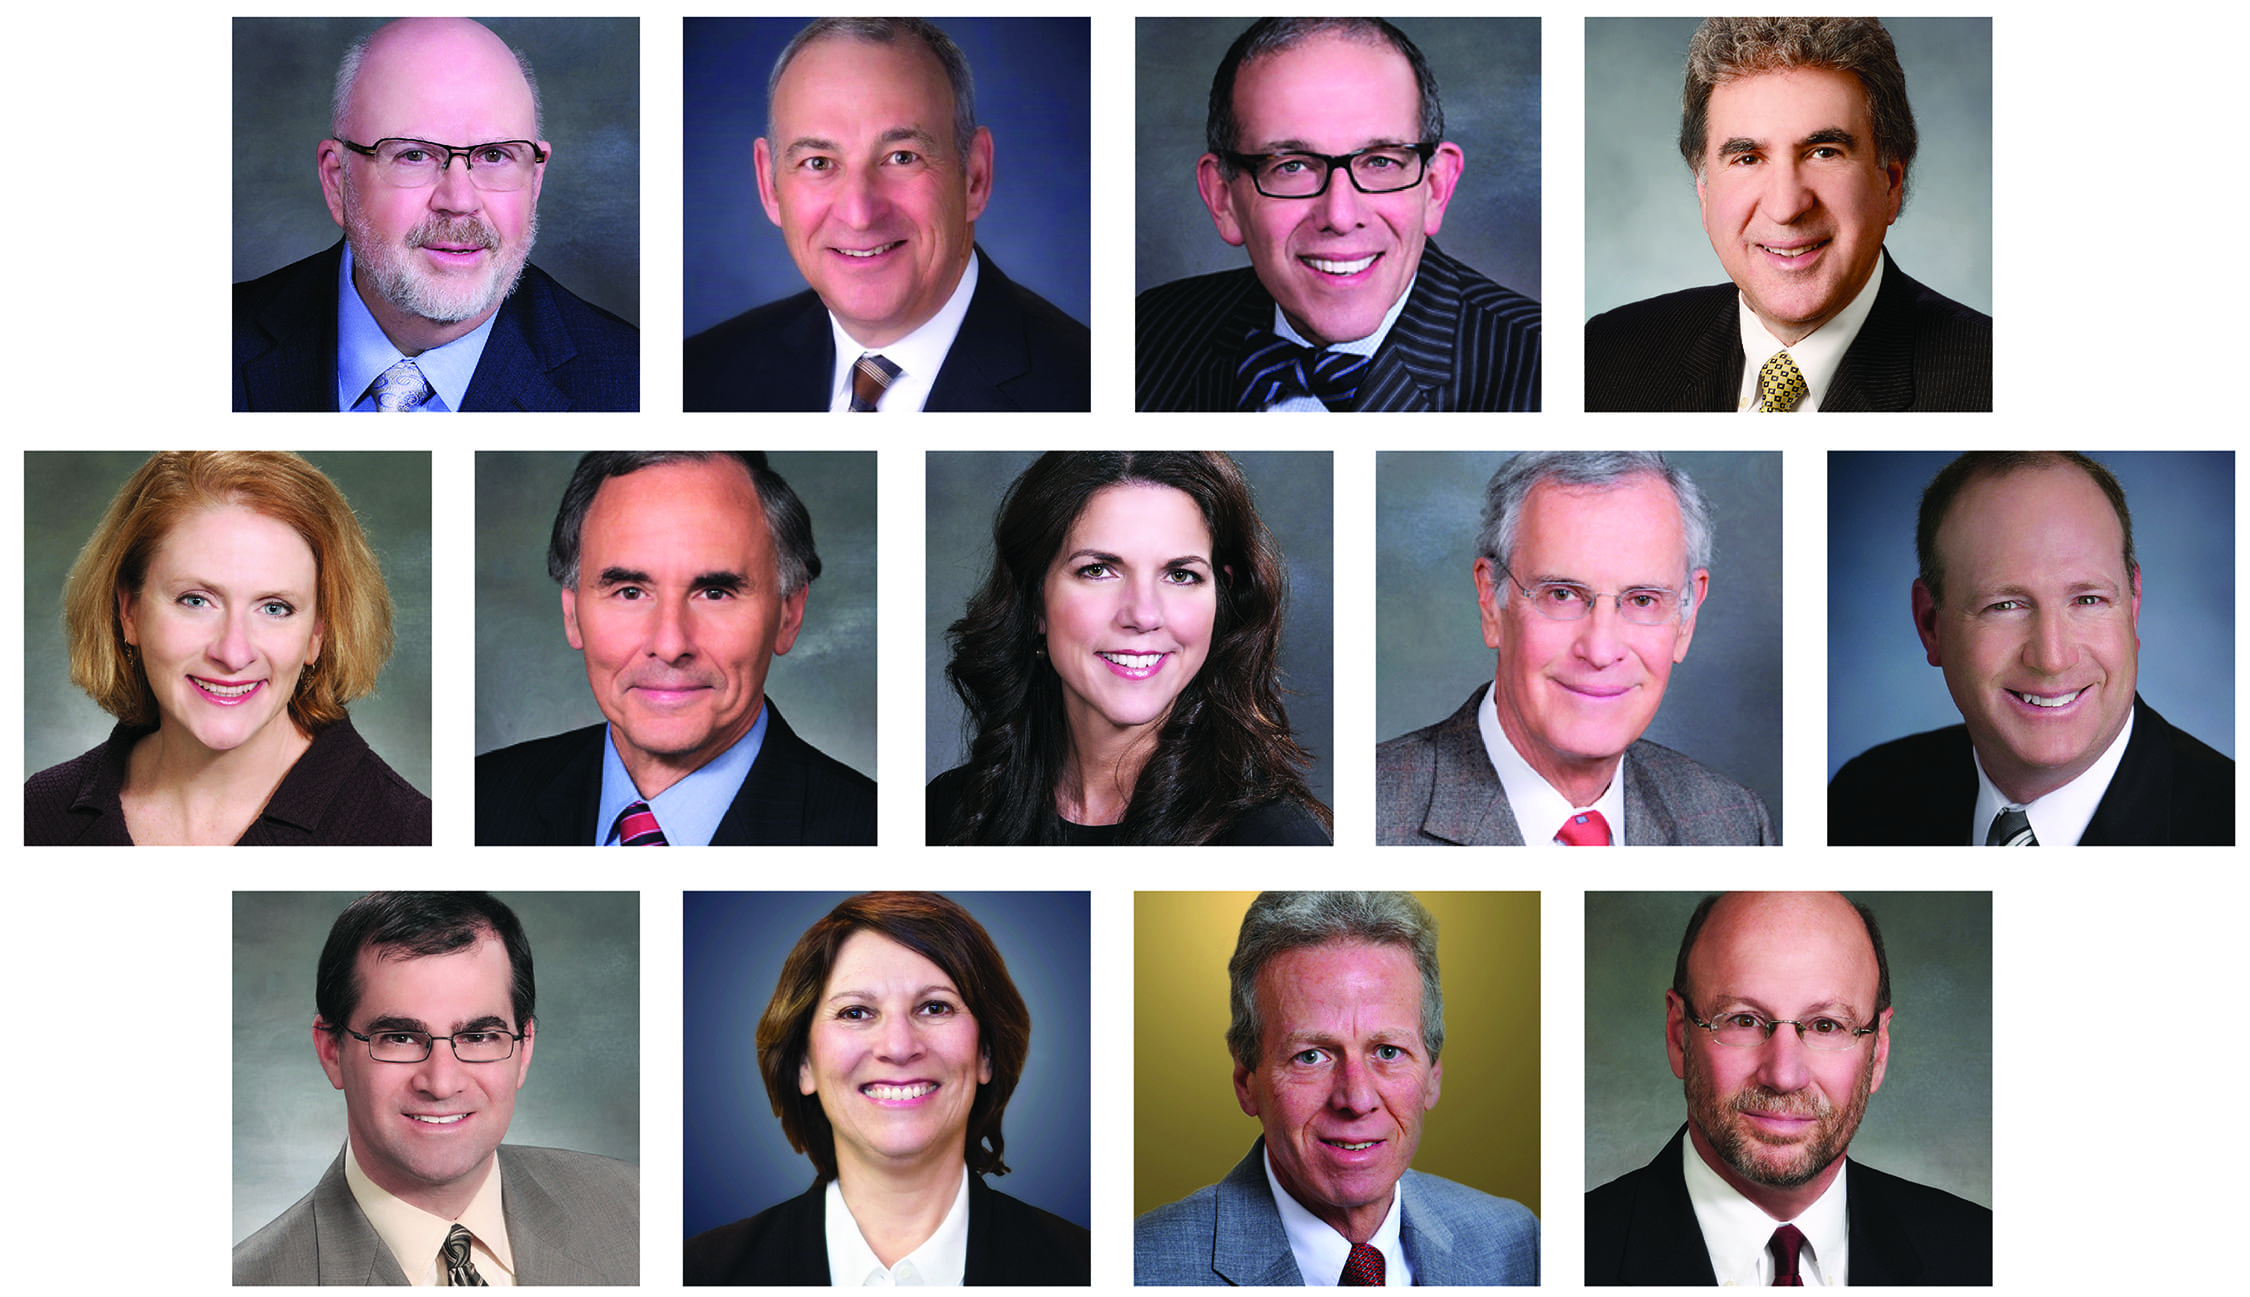 The attorneys are pictured in alphabetical order as they are listed in the article. Image courtesy of Maddin Hauser.